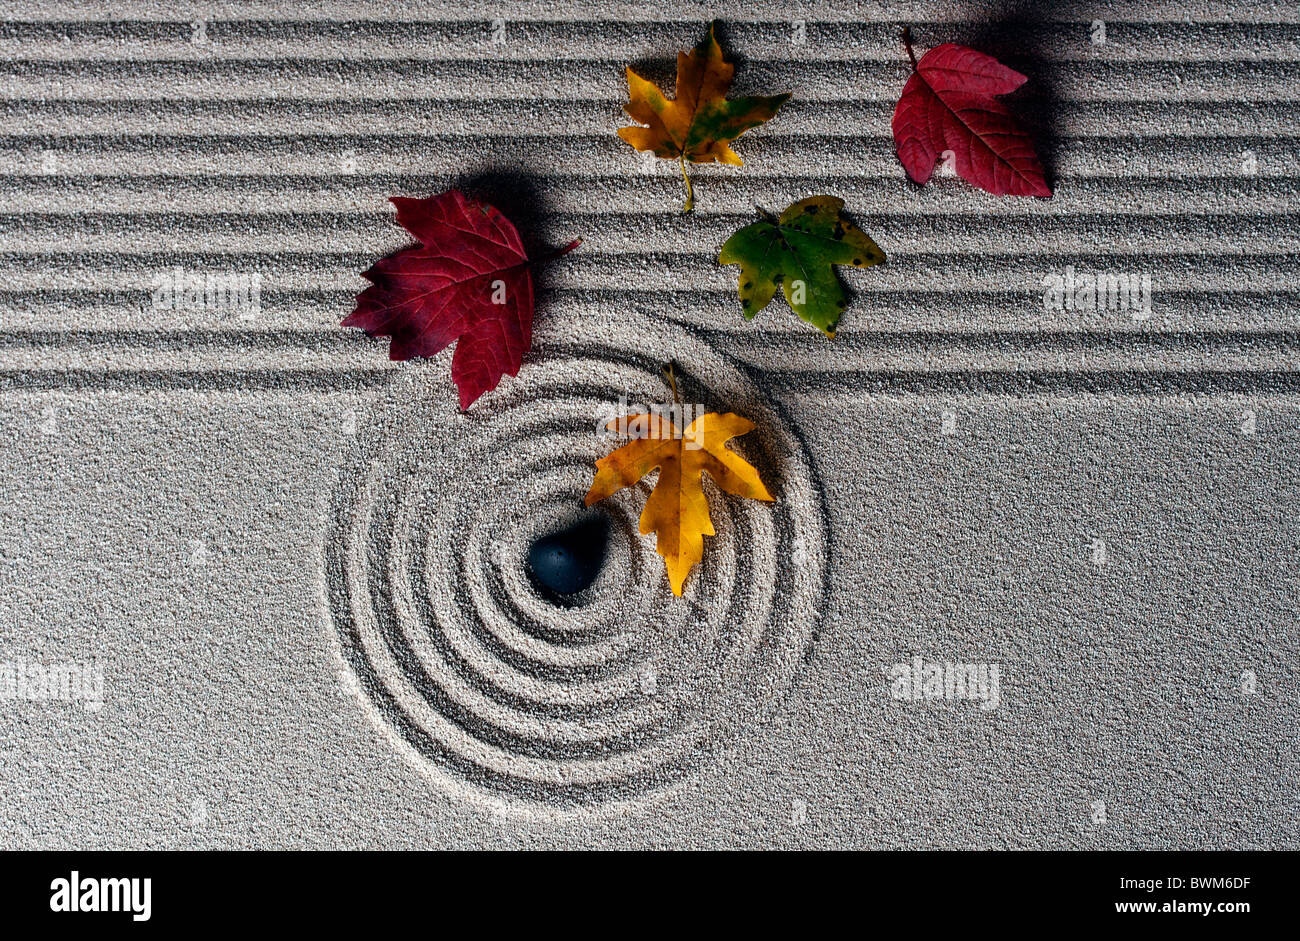 raked sand - zen rock garden - japan zen spirit inspired arrangement Stock Photo